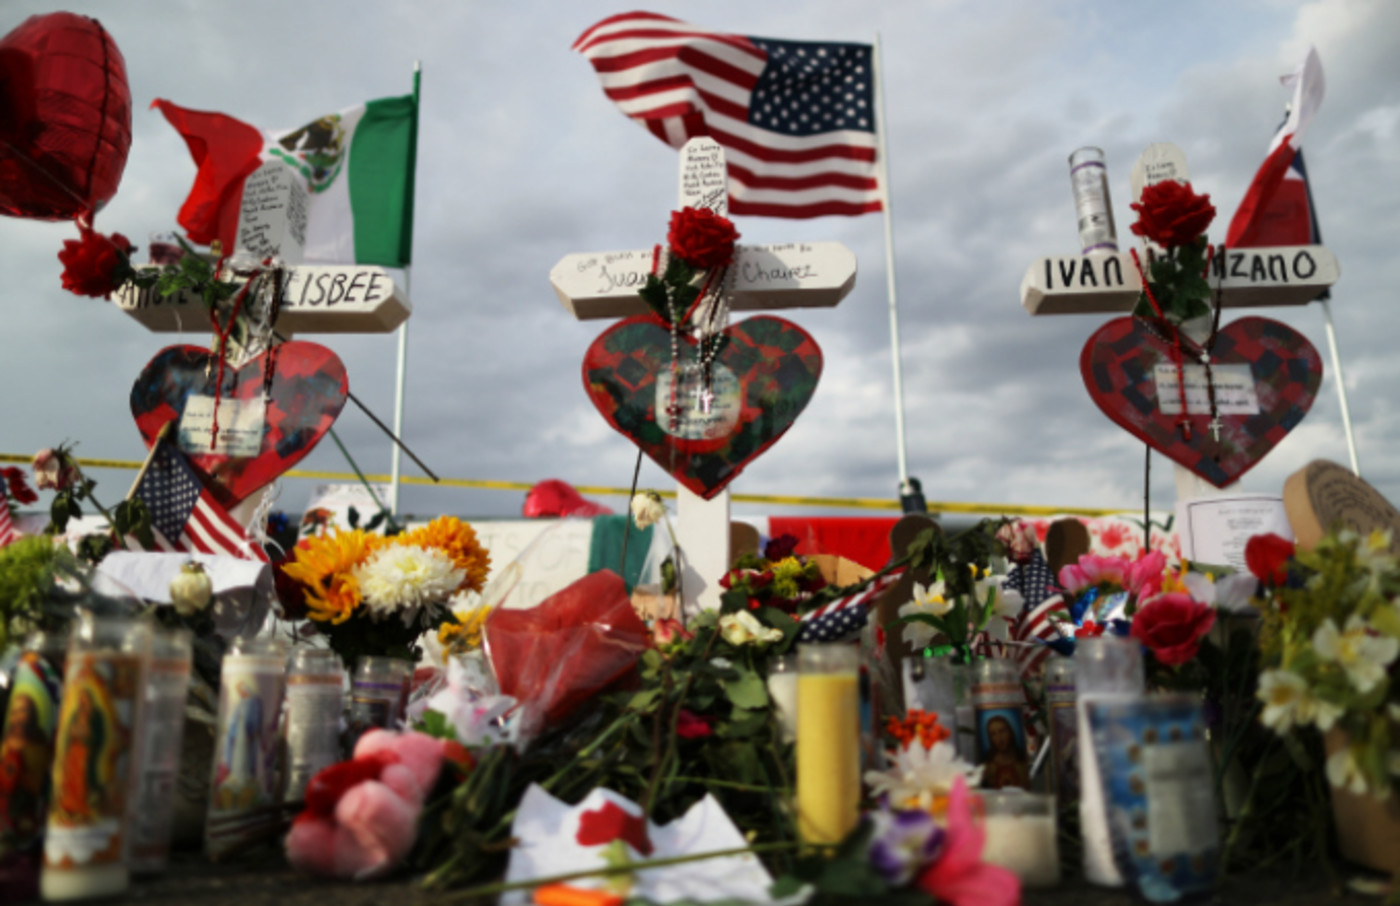 The U.S. and Mexican flags fly above a makeshift memorial for victims